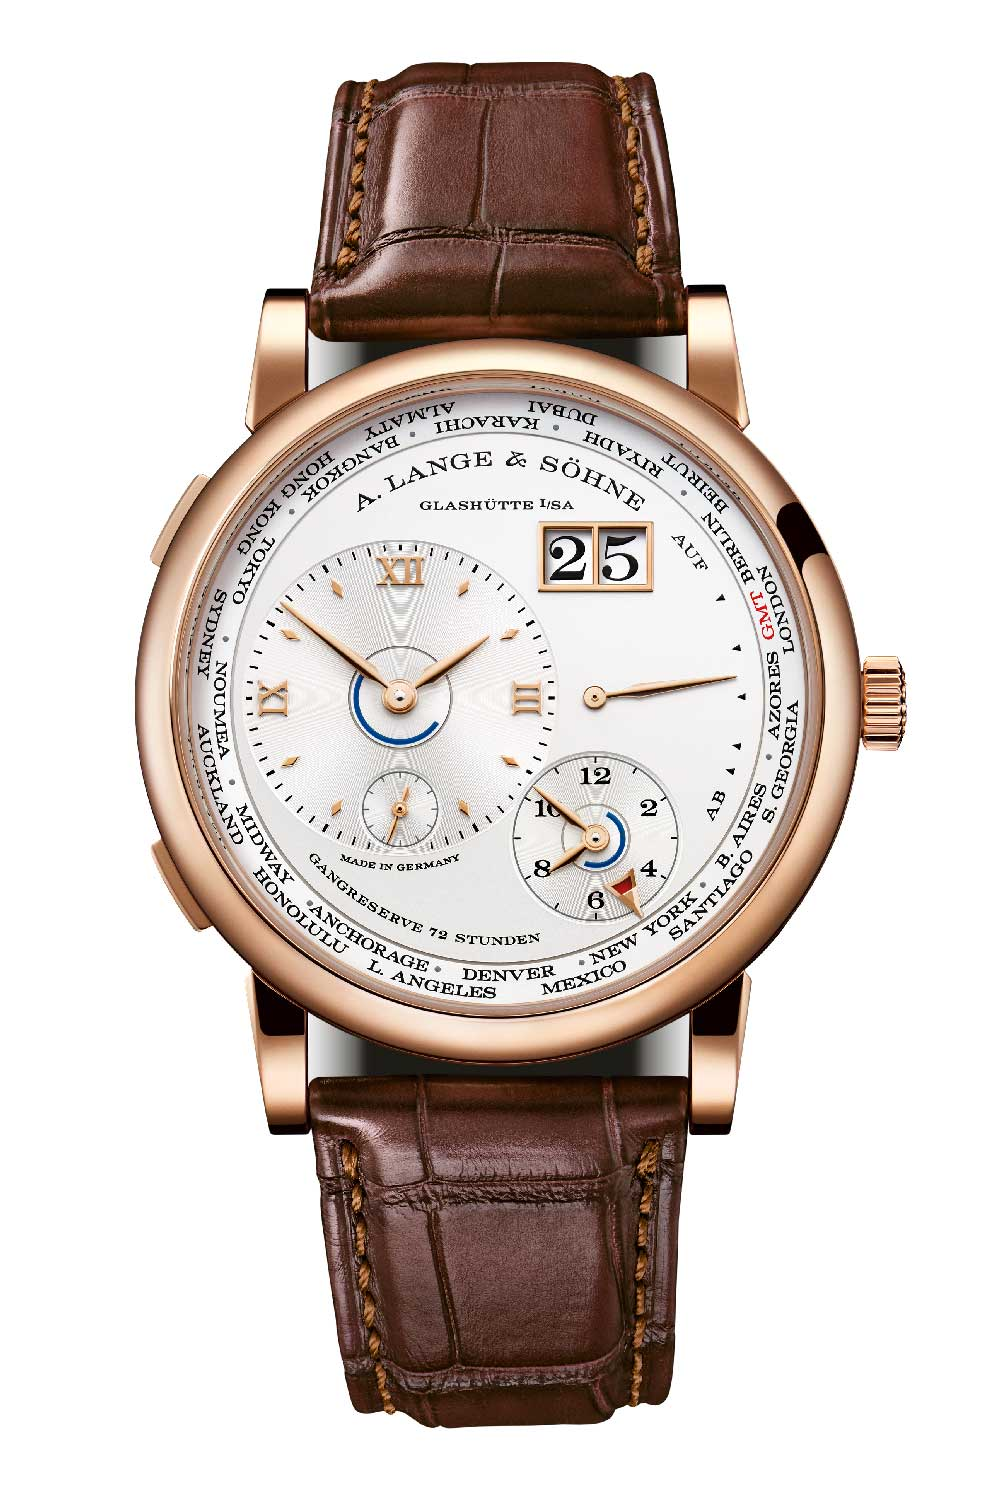 The new Lange 1 Time Zone in pink gold